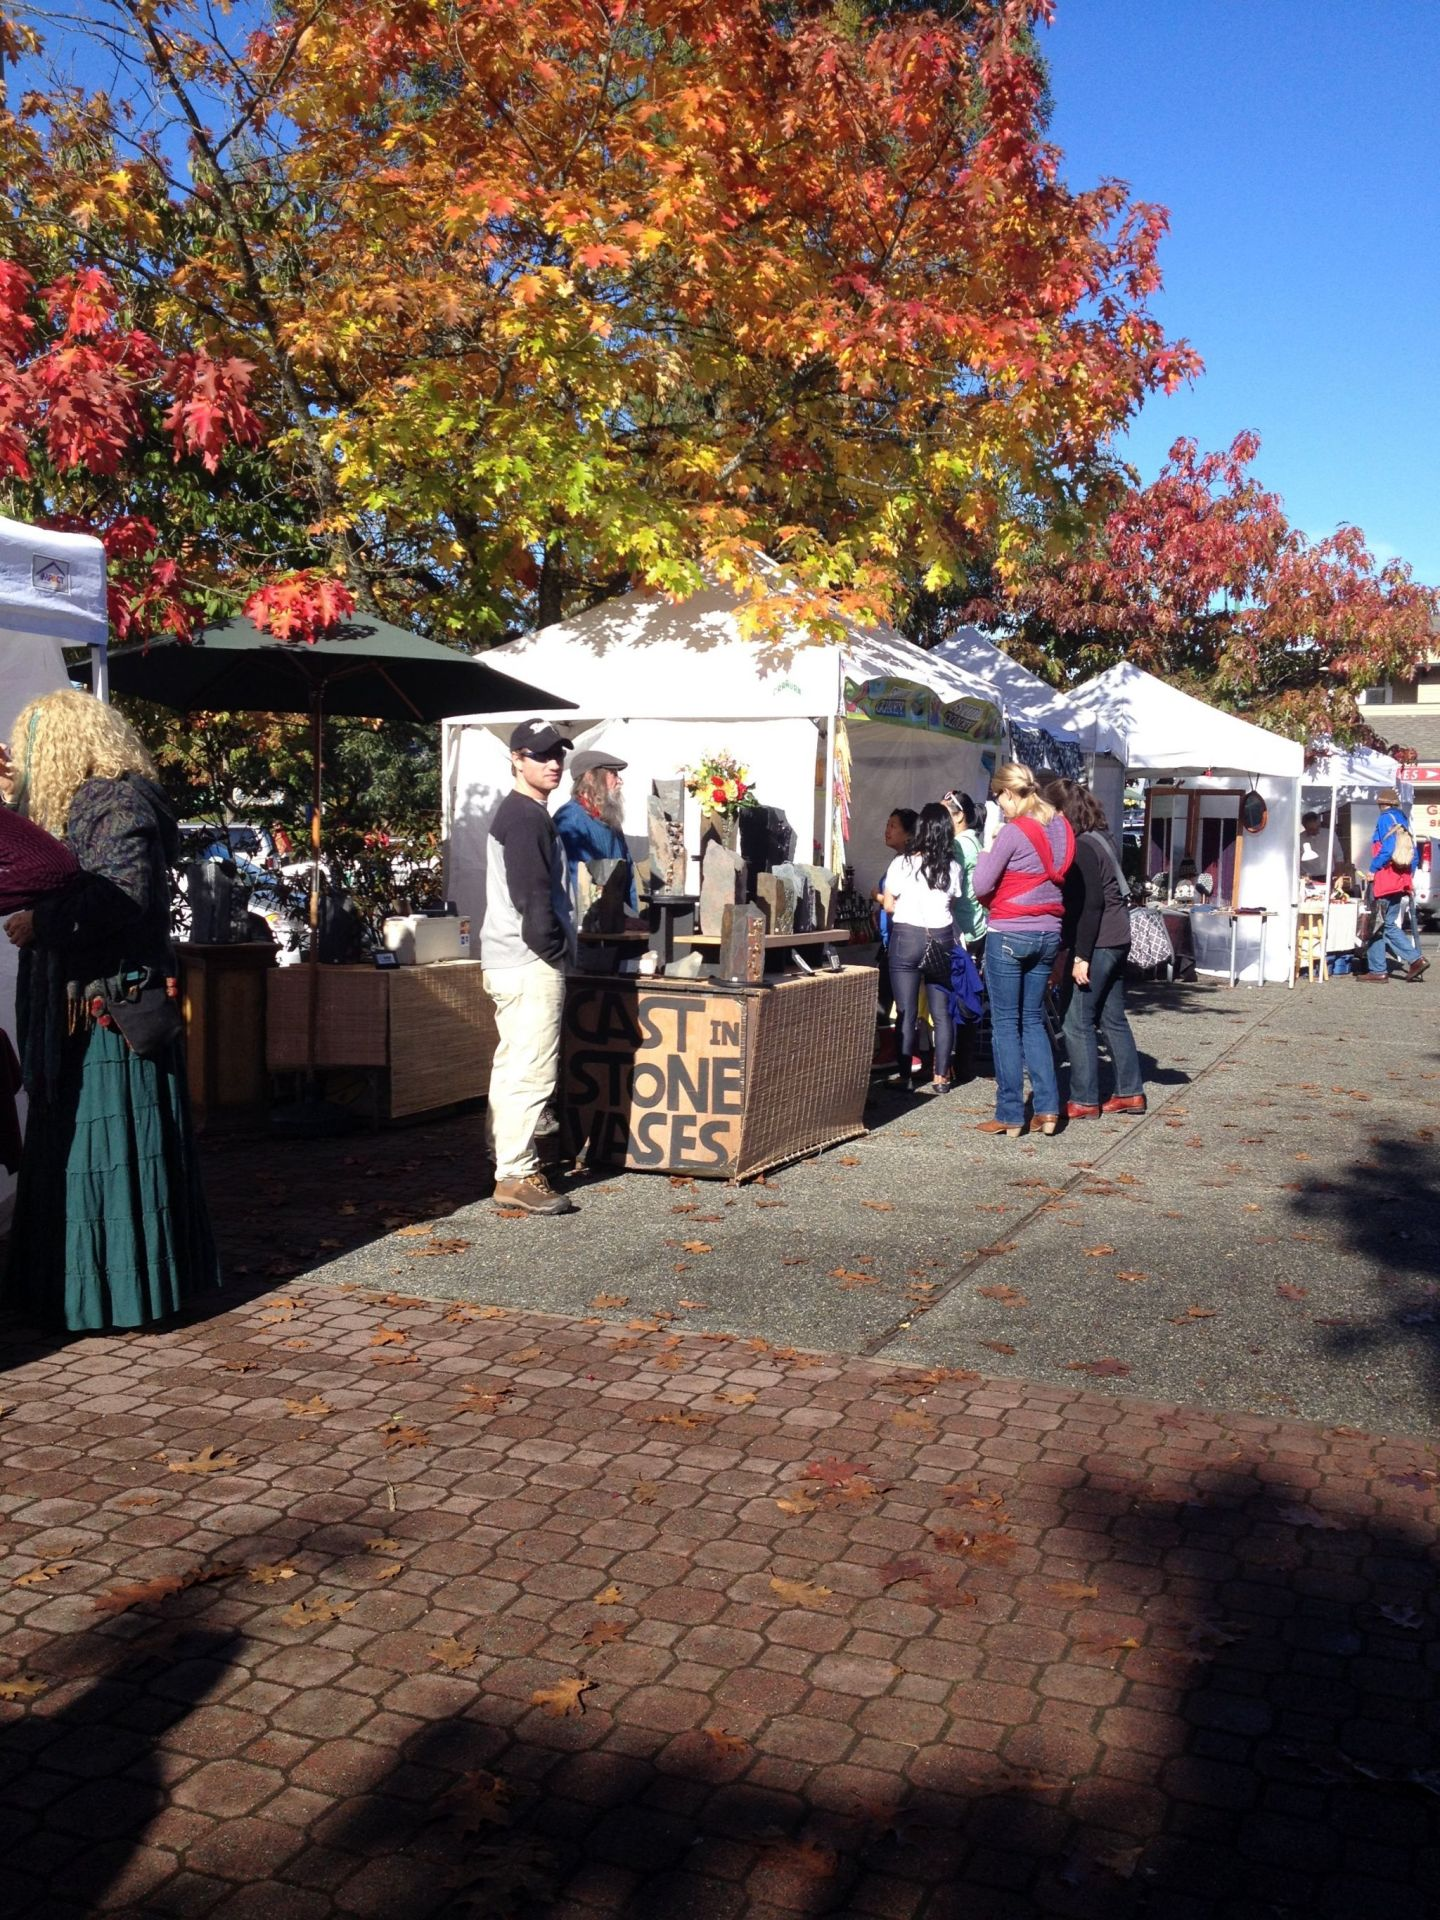 The market on Salt Spring Island